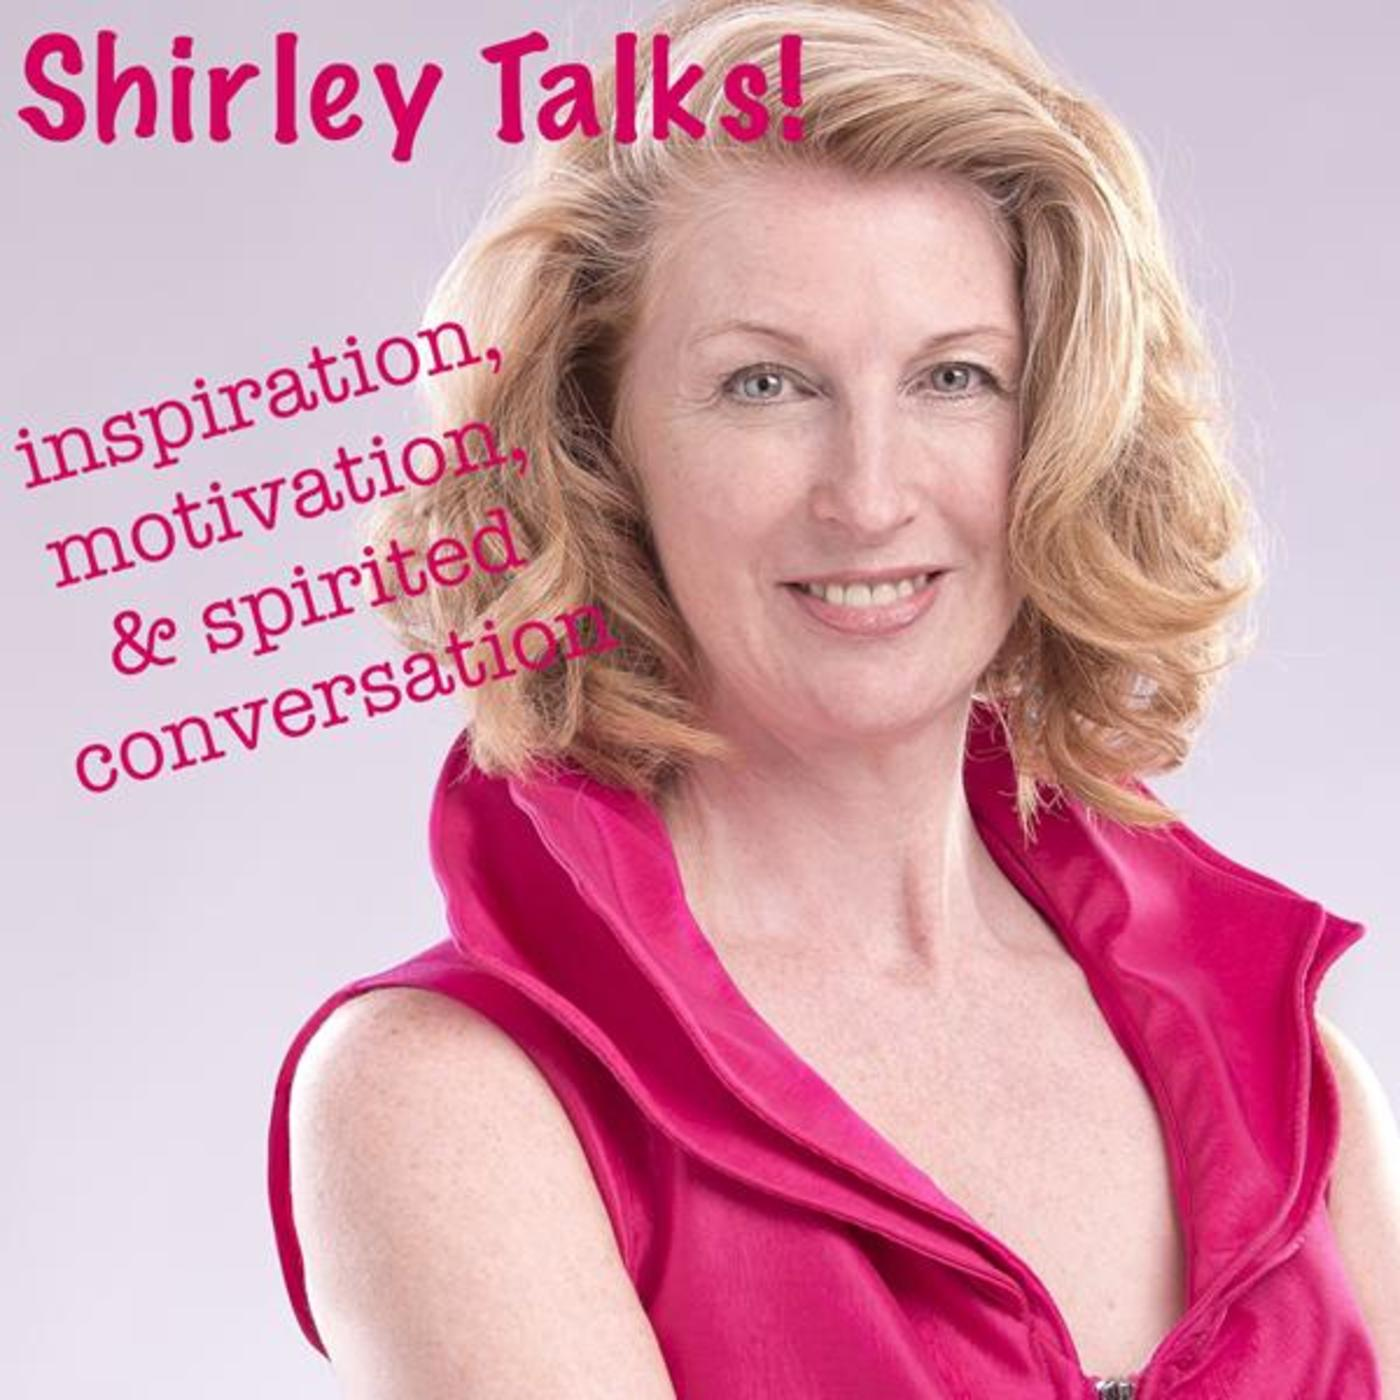 Shirley Talks!